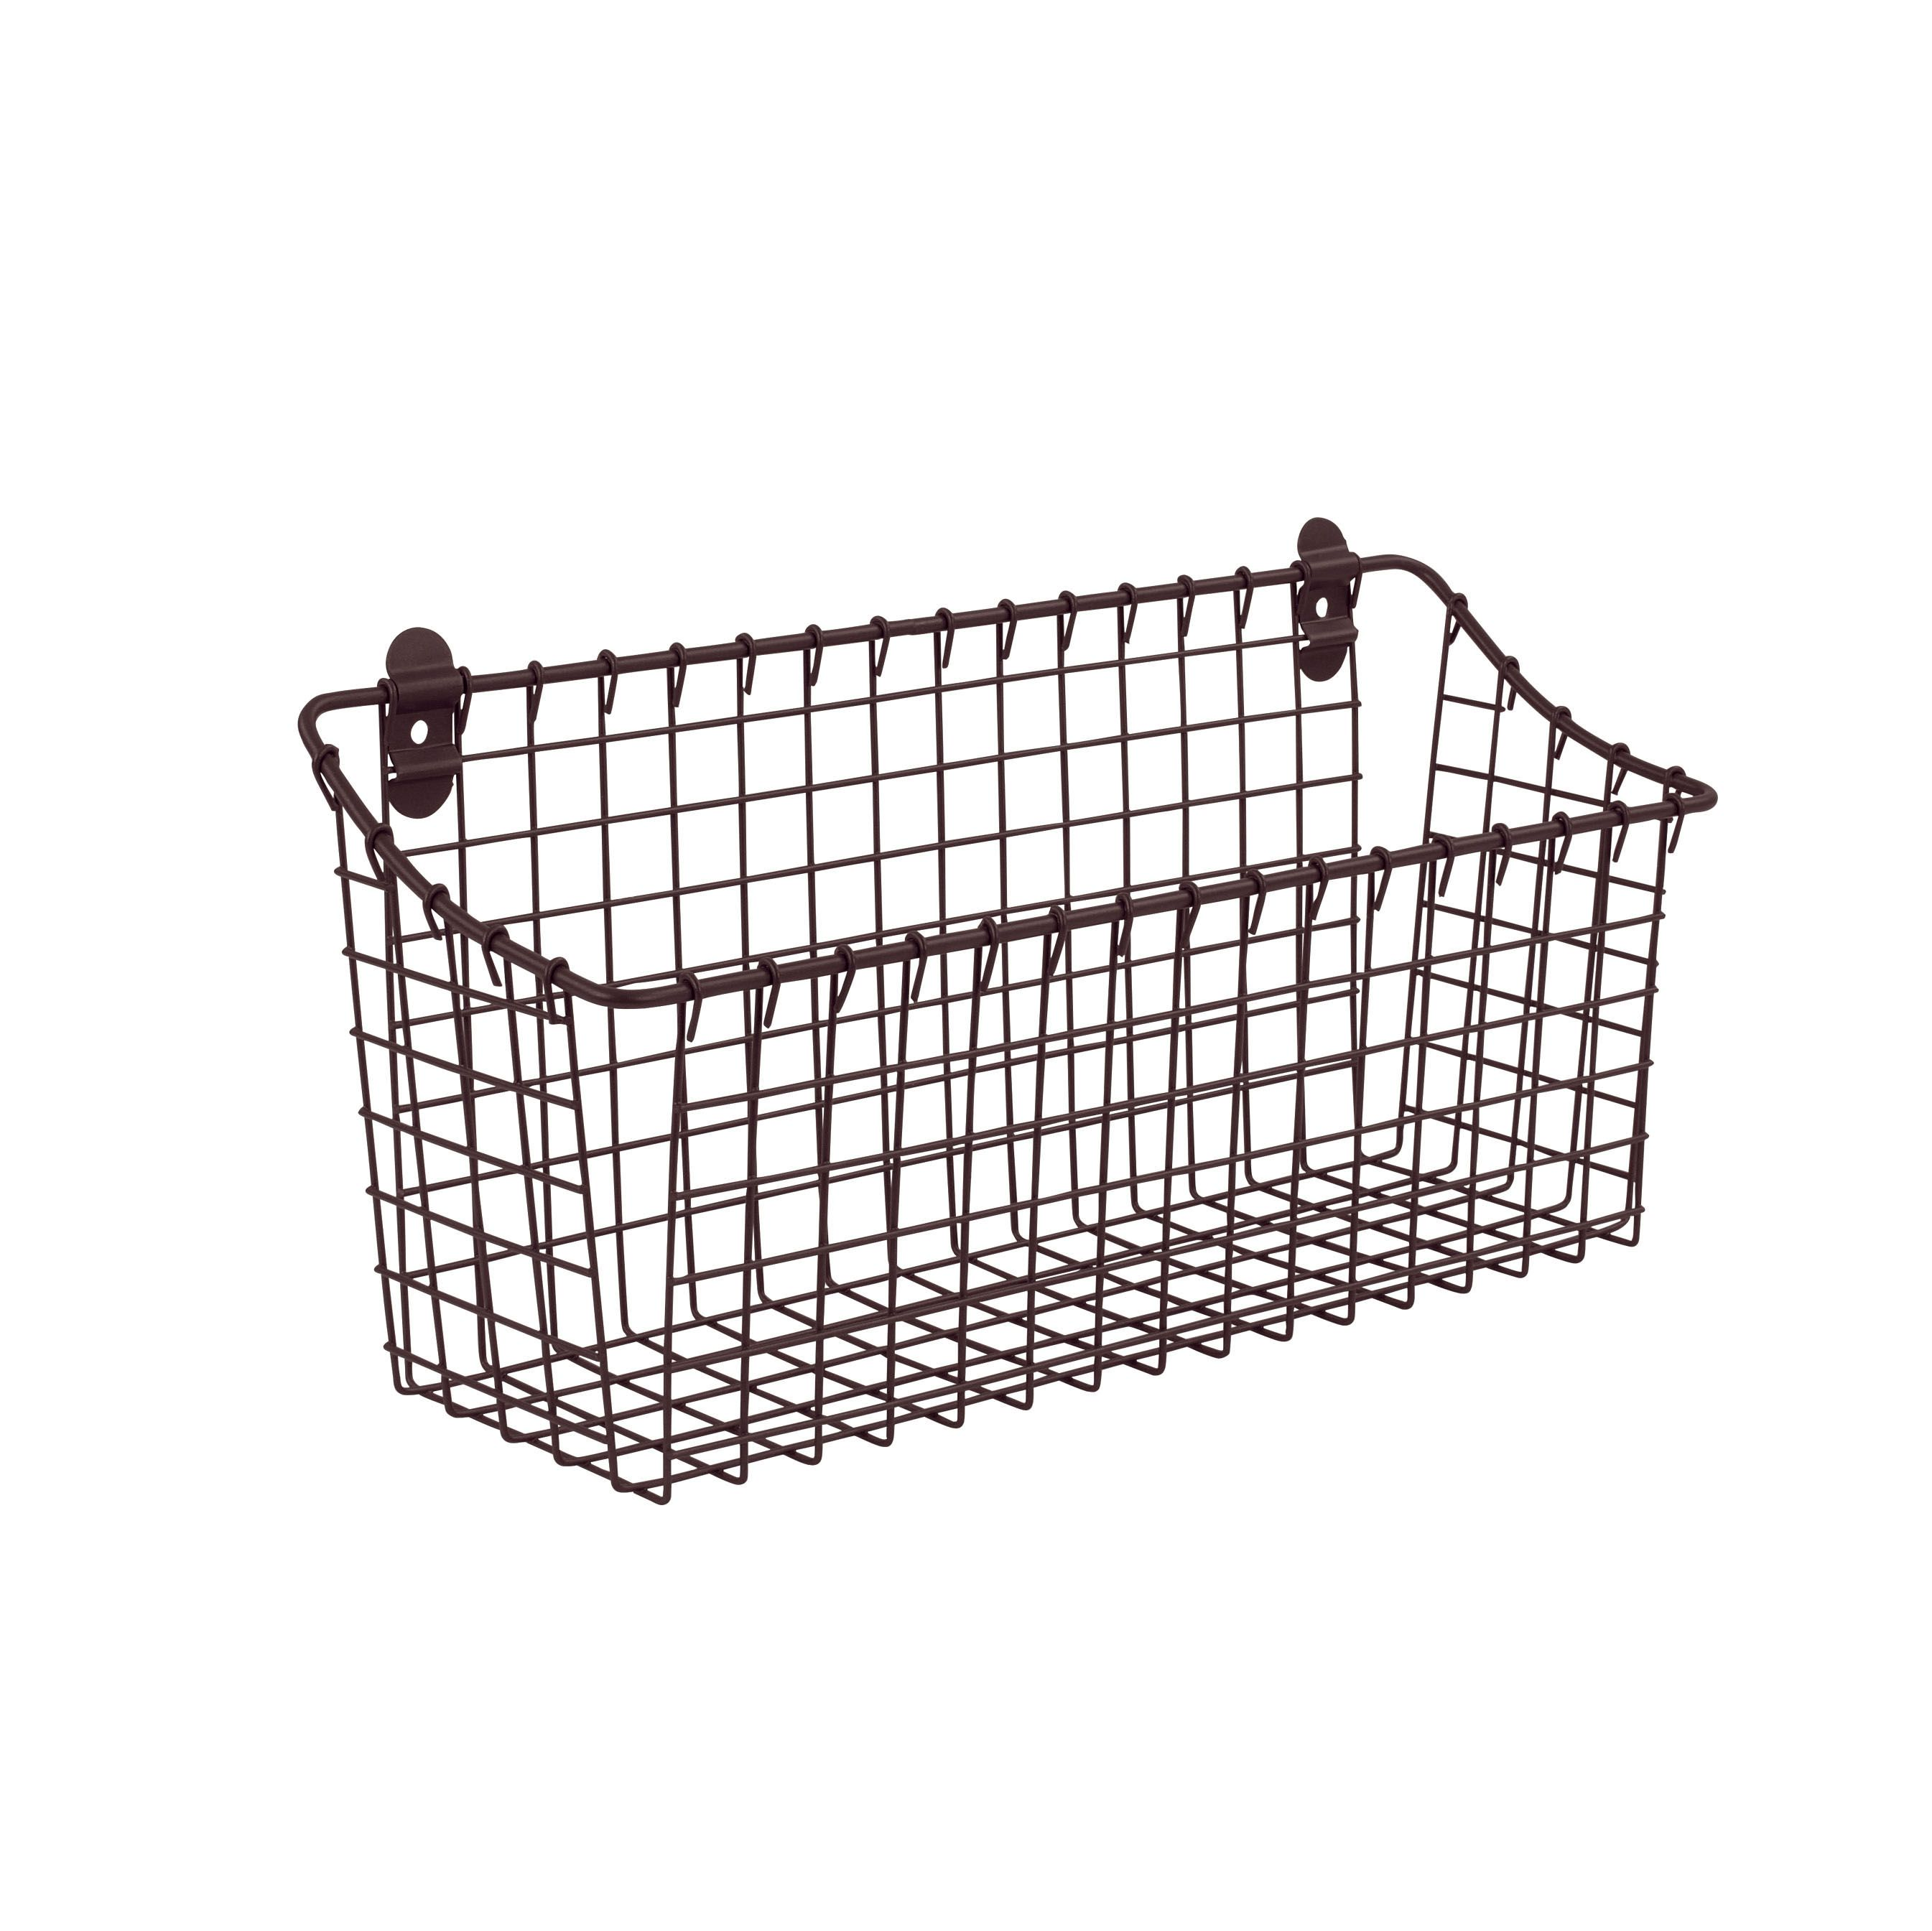 Vintage Wall Mount Storage Basket Industrial GRAY FREE SHIPPING